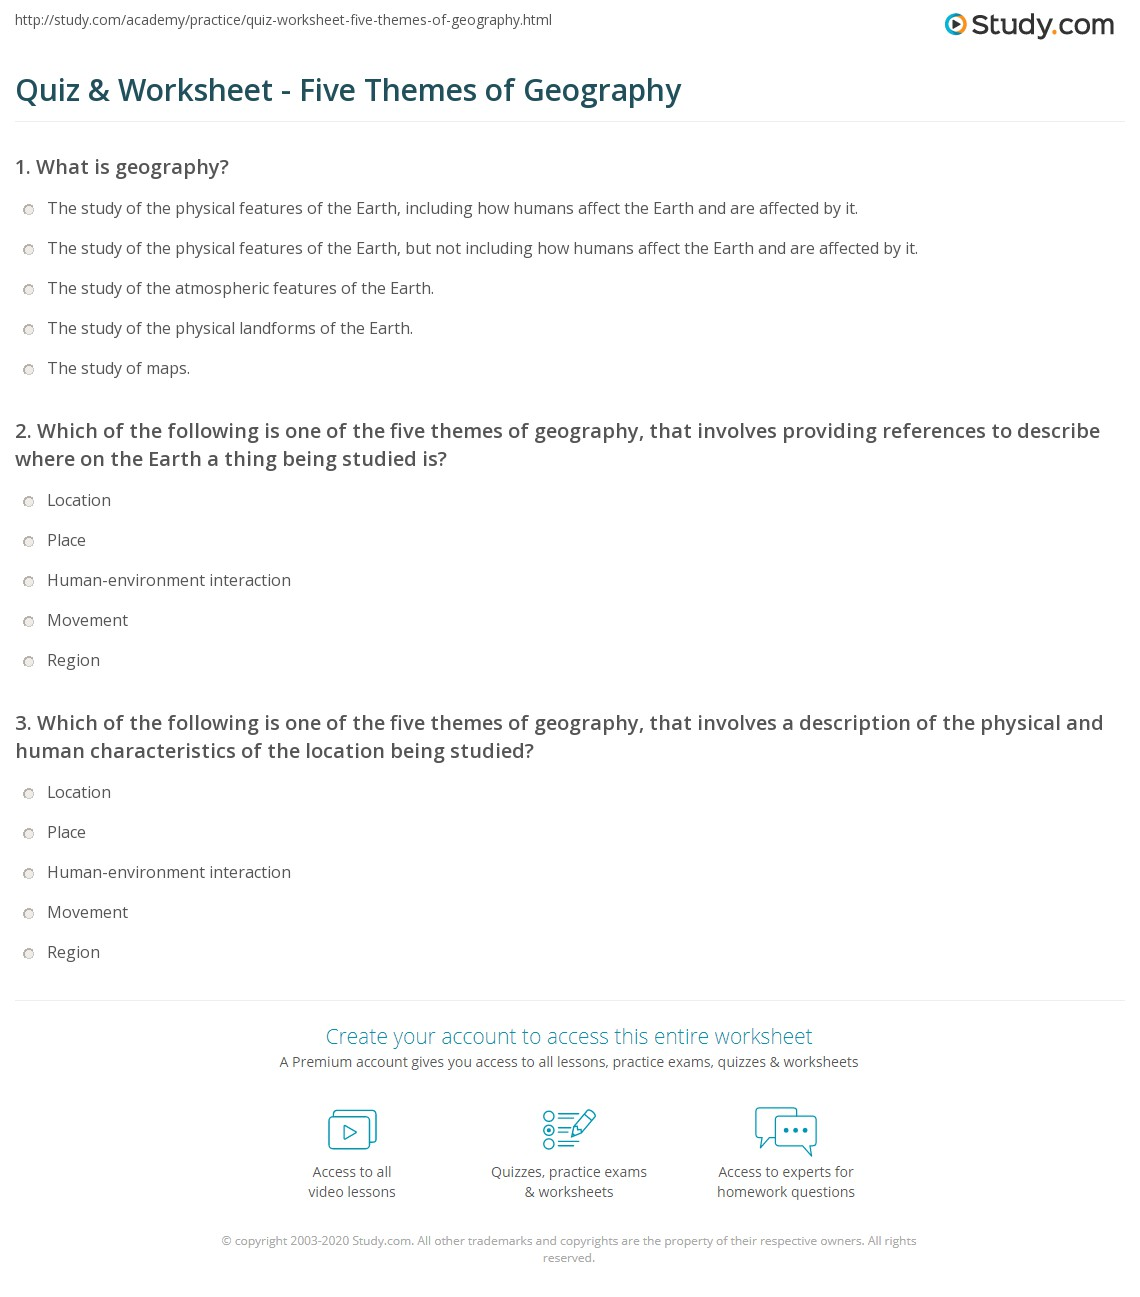 Worksheet Five Themes Of Geography Worksheet quiz worksheet five themes of geography study com print what are the worksheet